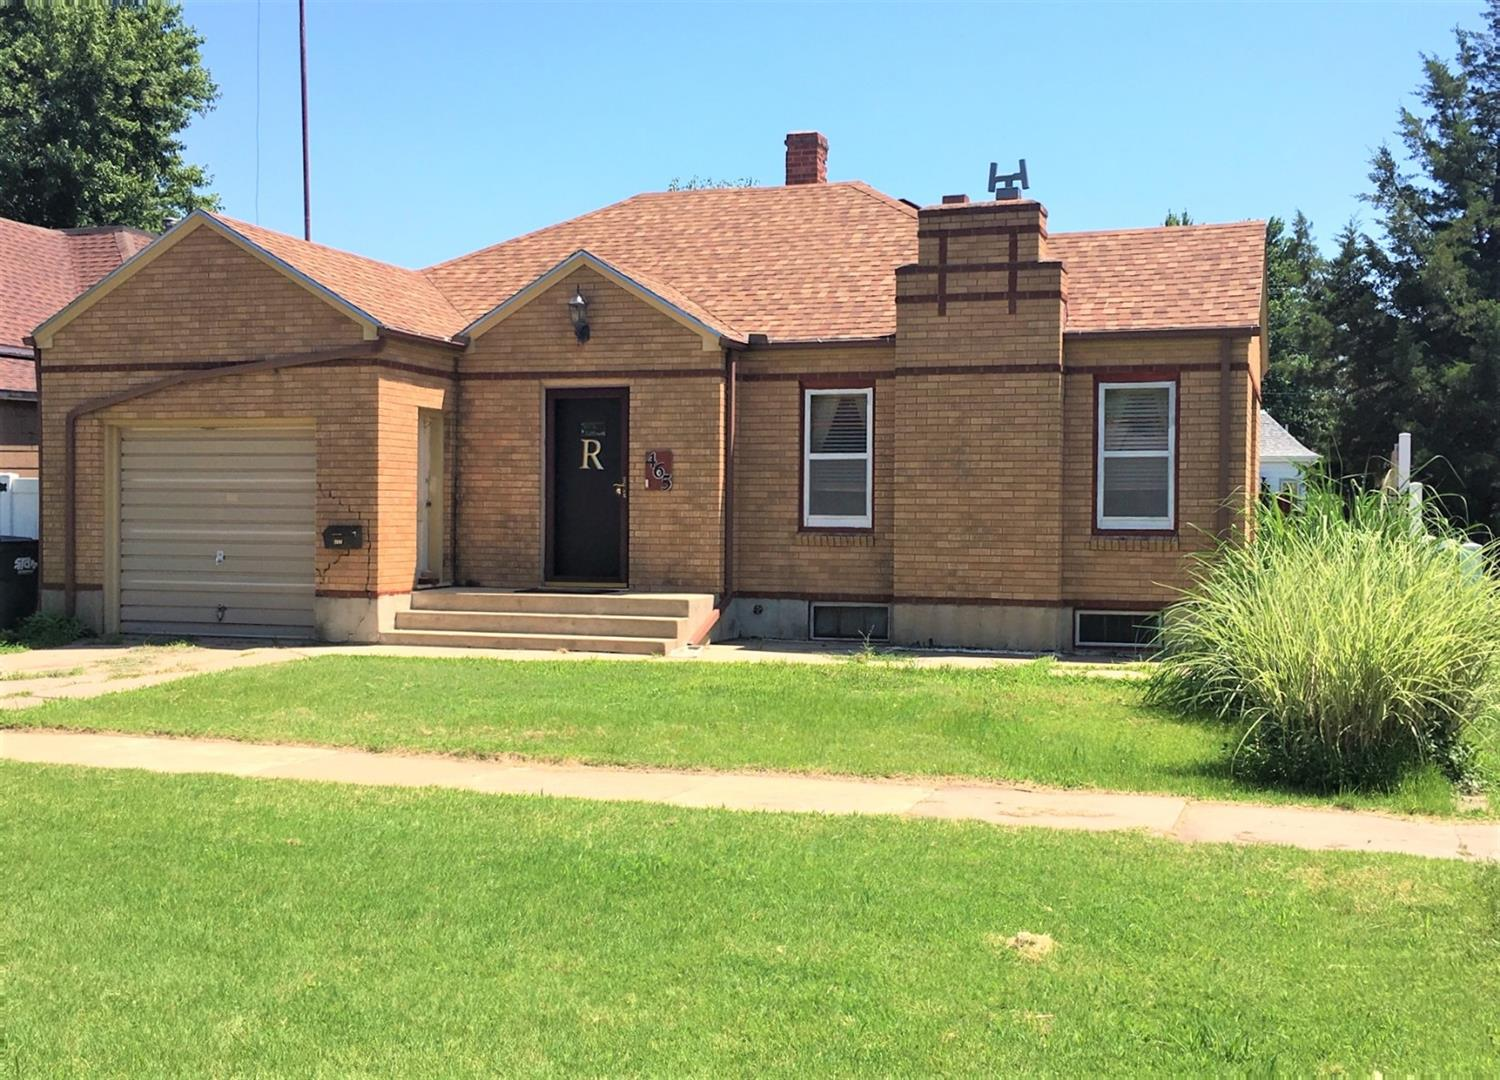 SIMPLE LIVING & Centrally located! 3 bed/1 bath with full basement, attached garage PLUS detached garage with alley access. RELAX & enjoy your PRIVACY in the large fenced in backyard! Don't wait-CALL TODAY!